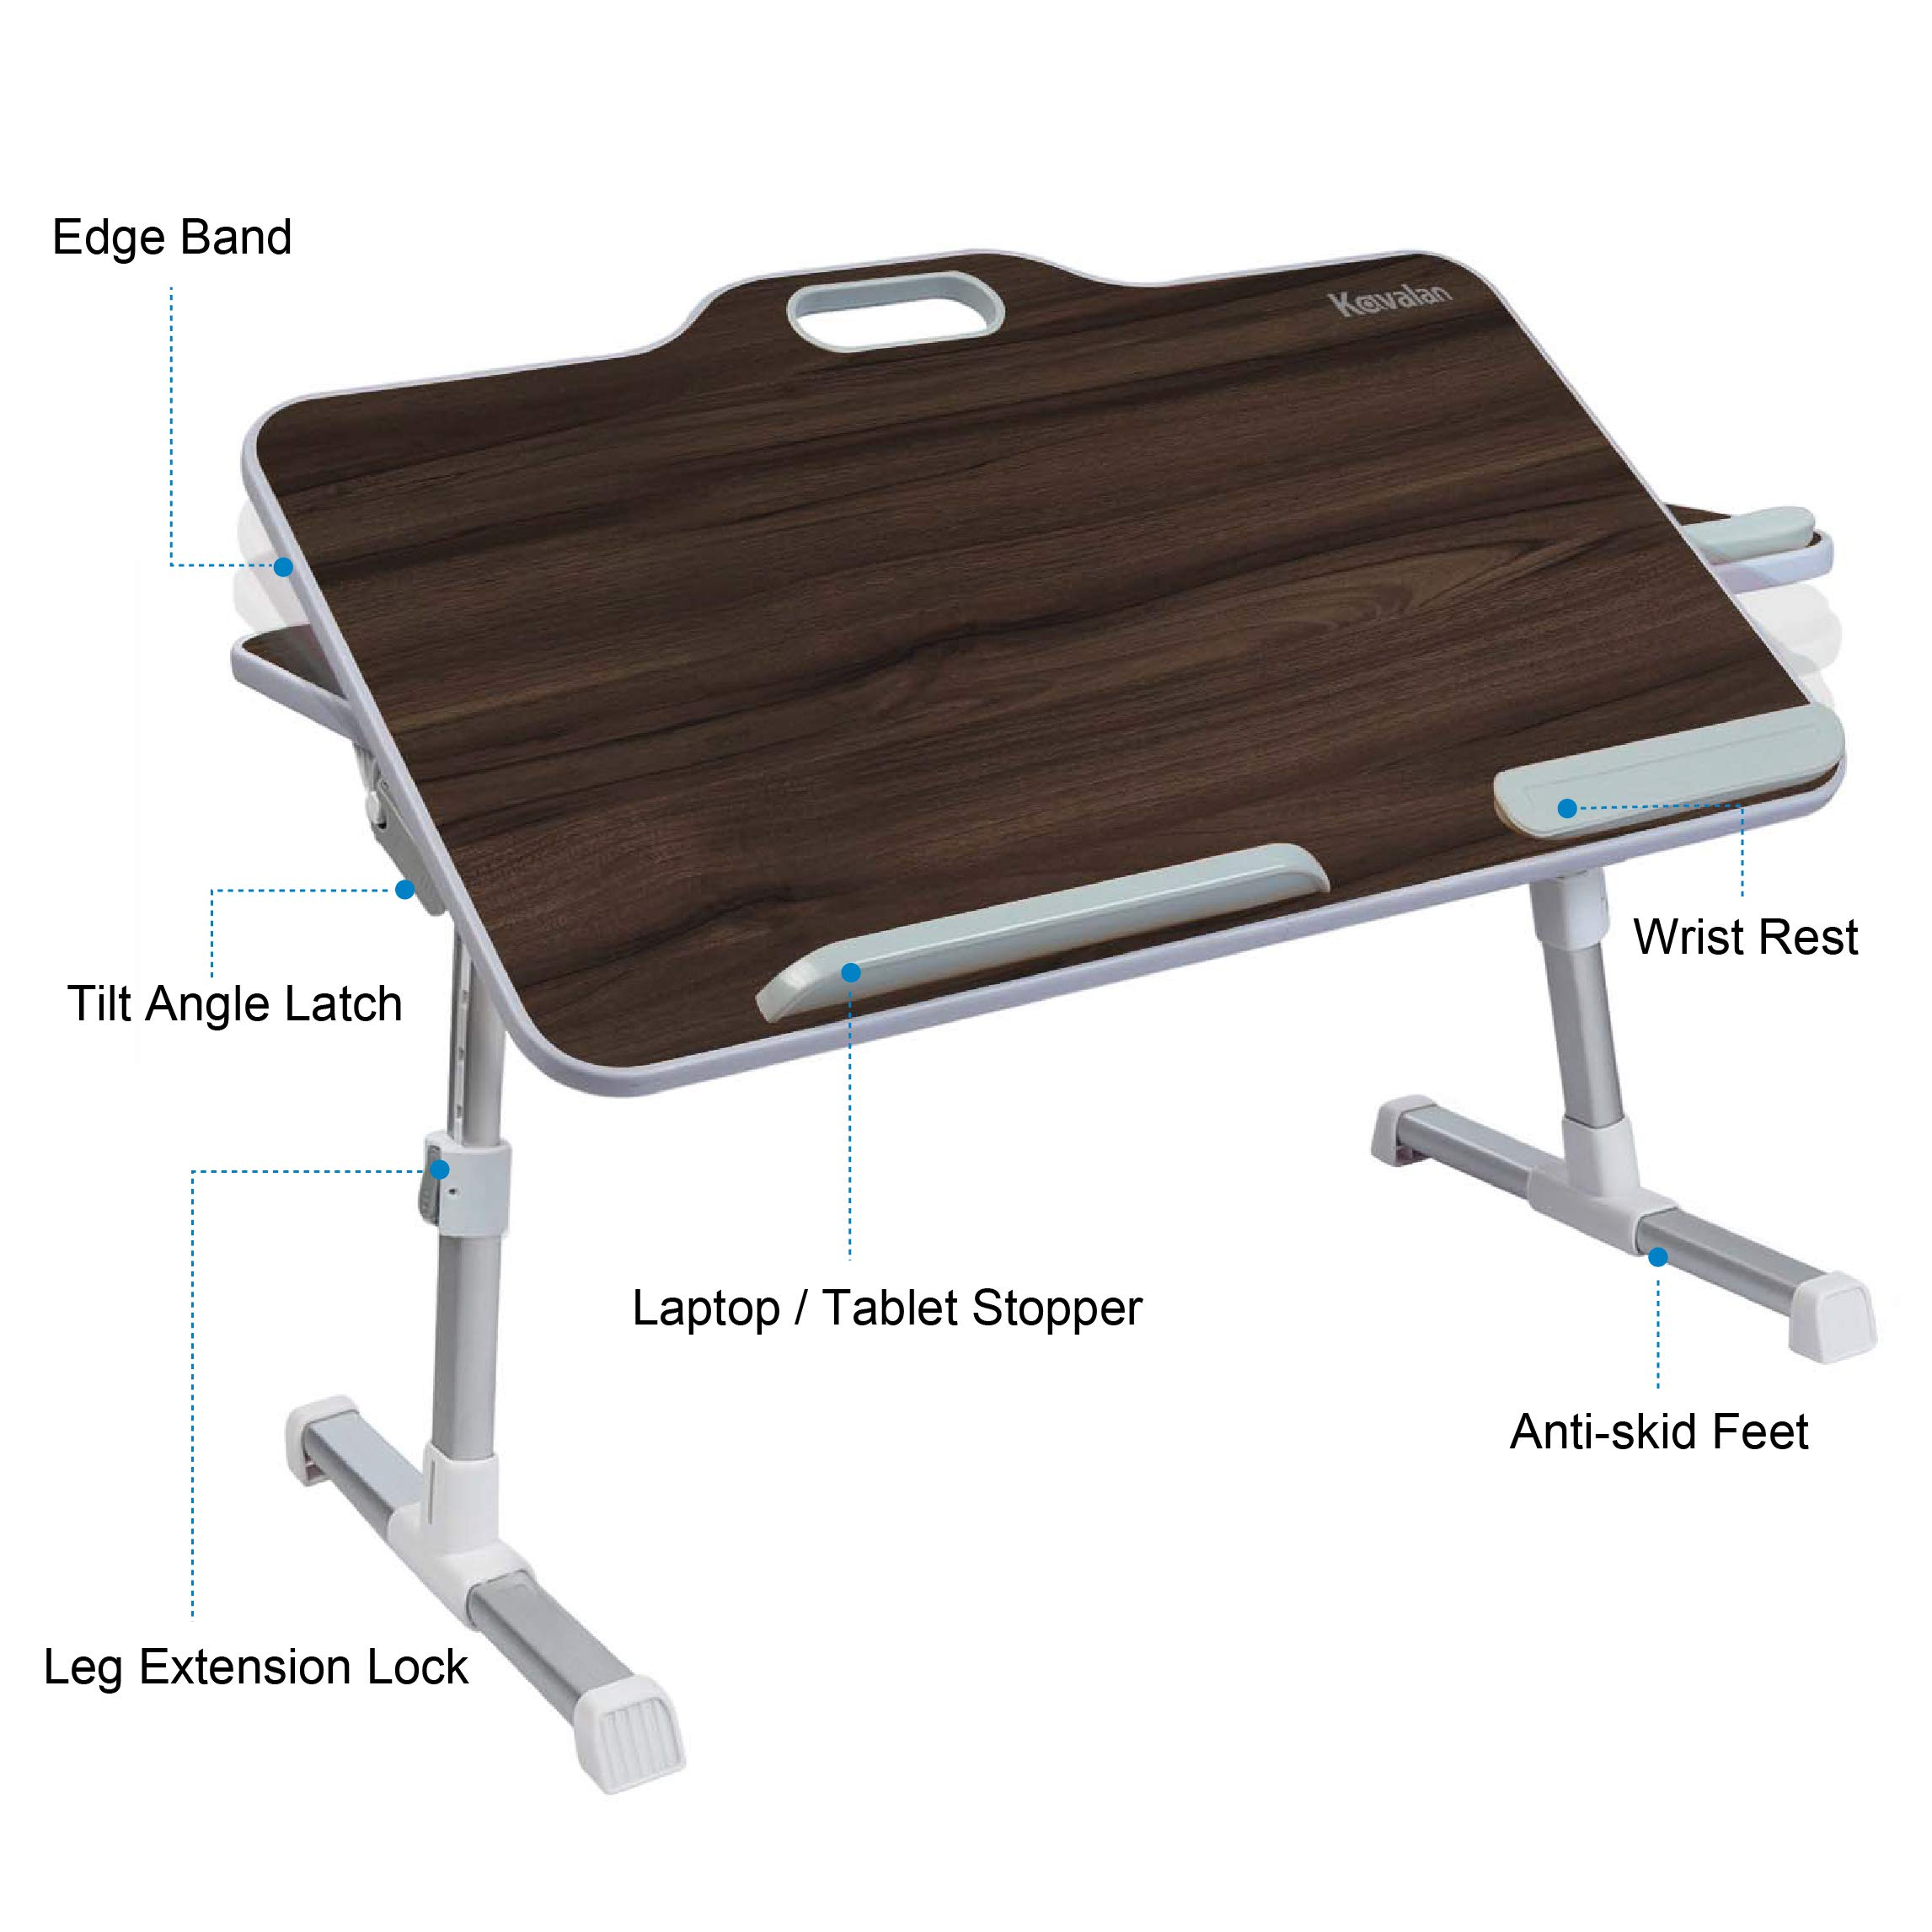 Kavalan Large Size Portable Laptop Table with Handle, Height & Angle Adjustable Sit and Stand Desk, Bed & Breakfast Table Tray, Foldable Notebook Stand Holder for Sofa Couch - Black Teak by Kavalan (Image #5)